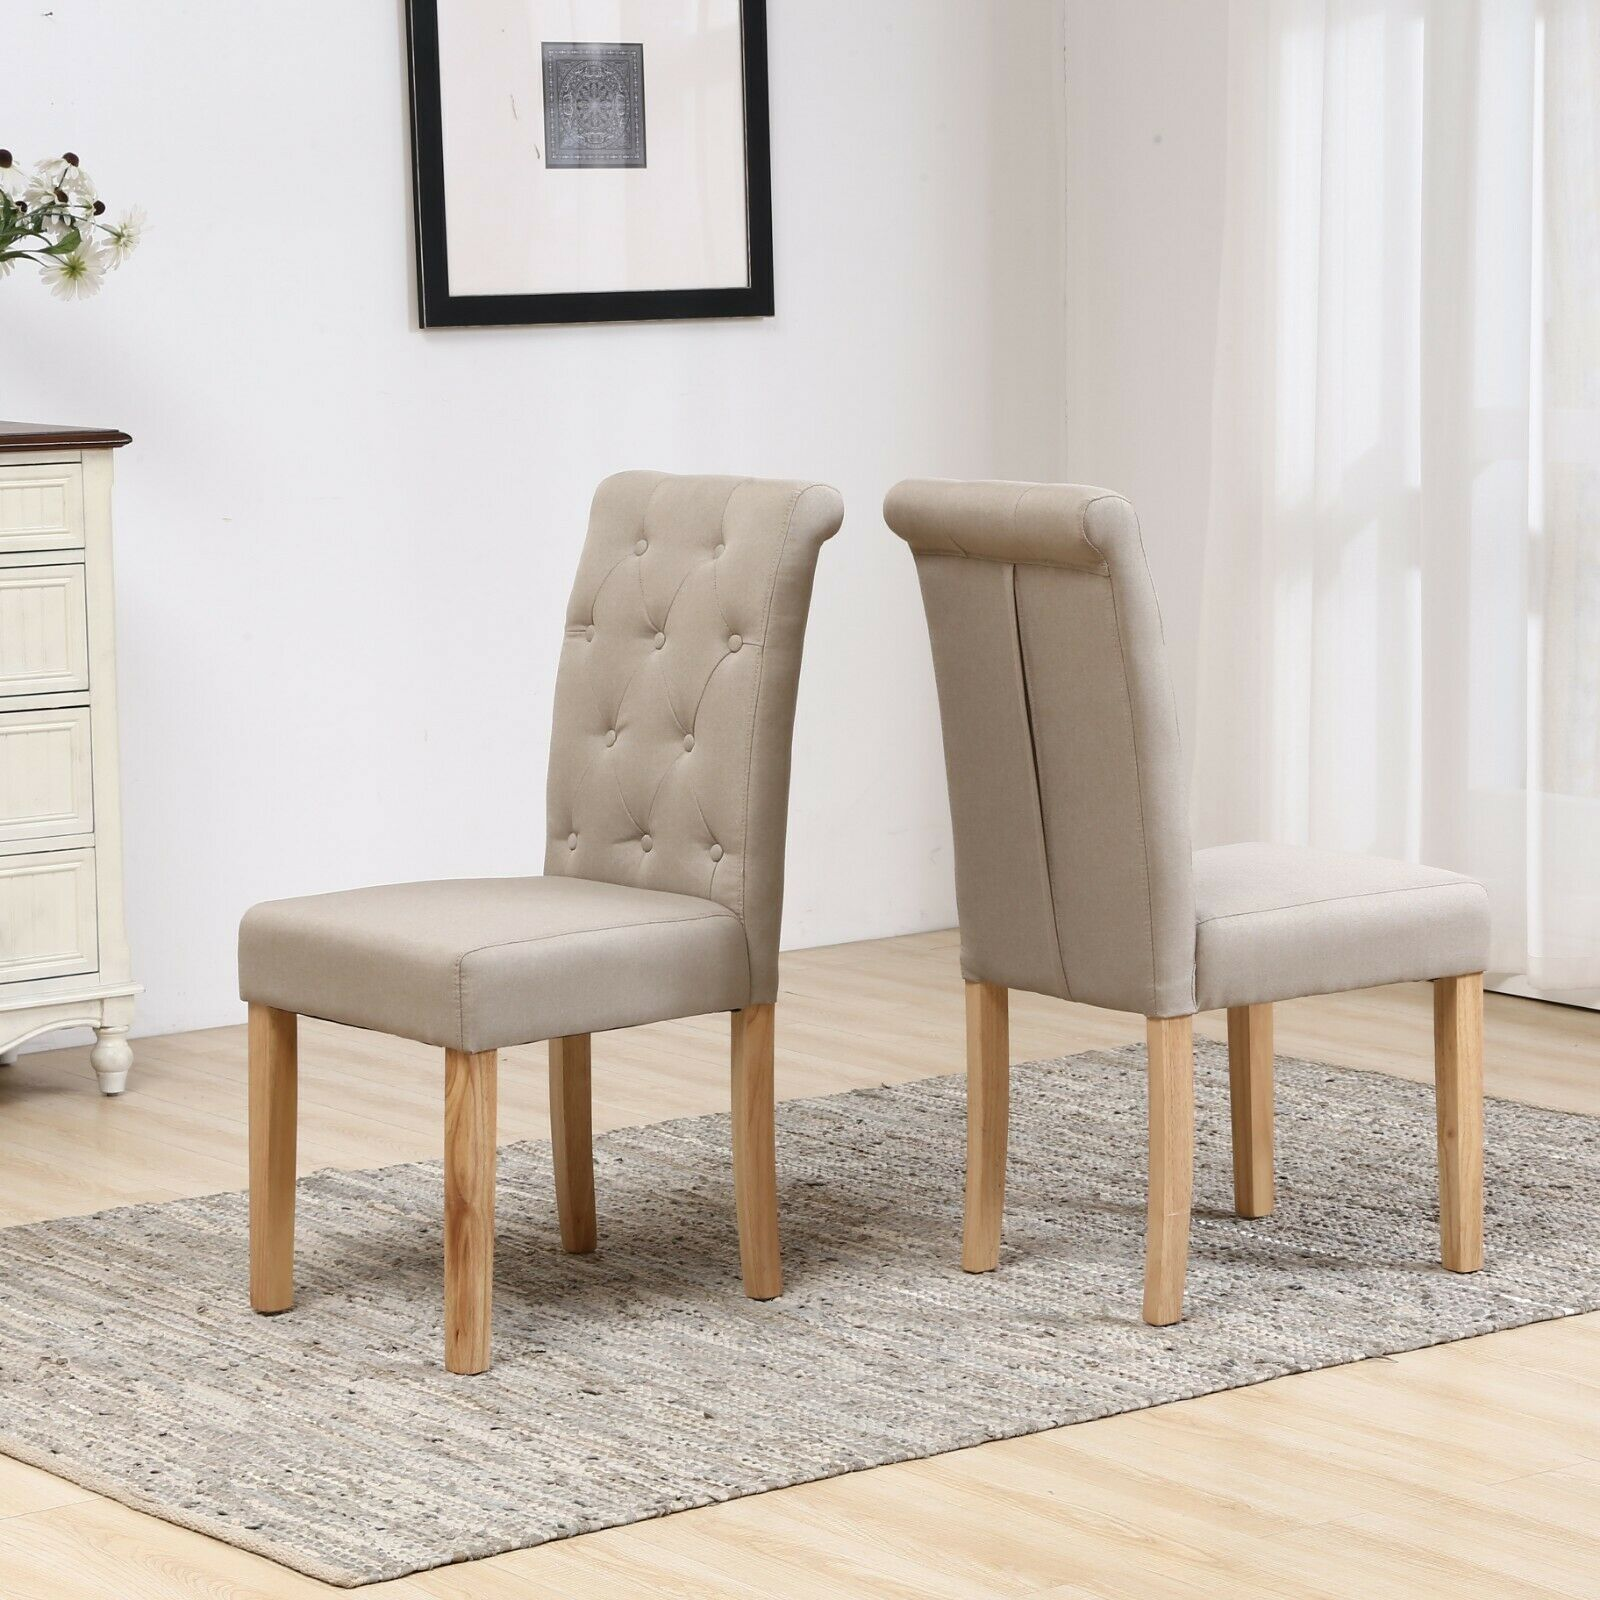 Best Fabric For Dining Room Chairs: Fabric High Button Back Roll Top Seat Dining Room Chairs Set Wooden Oak Legs